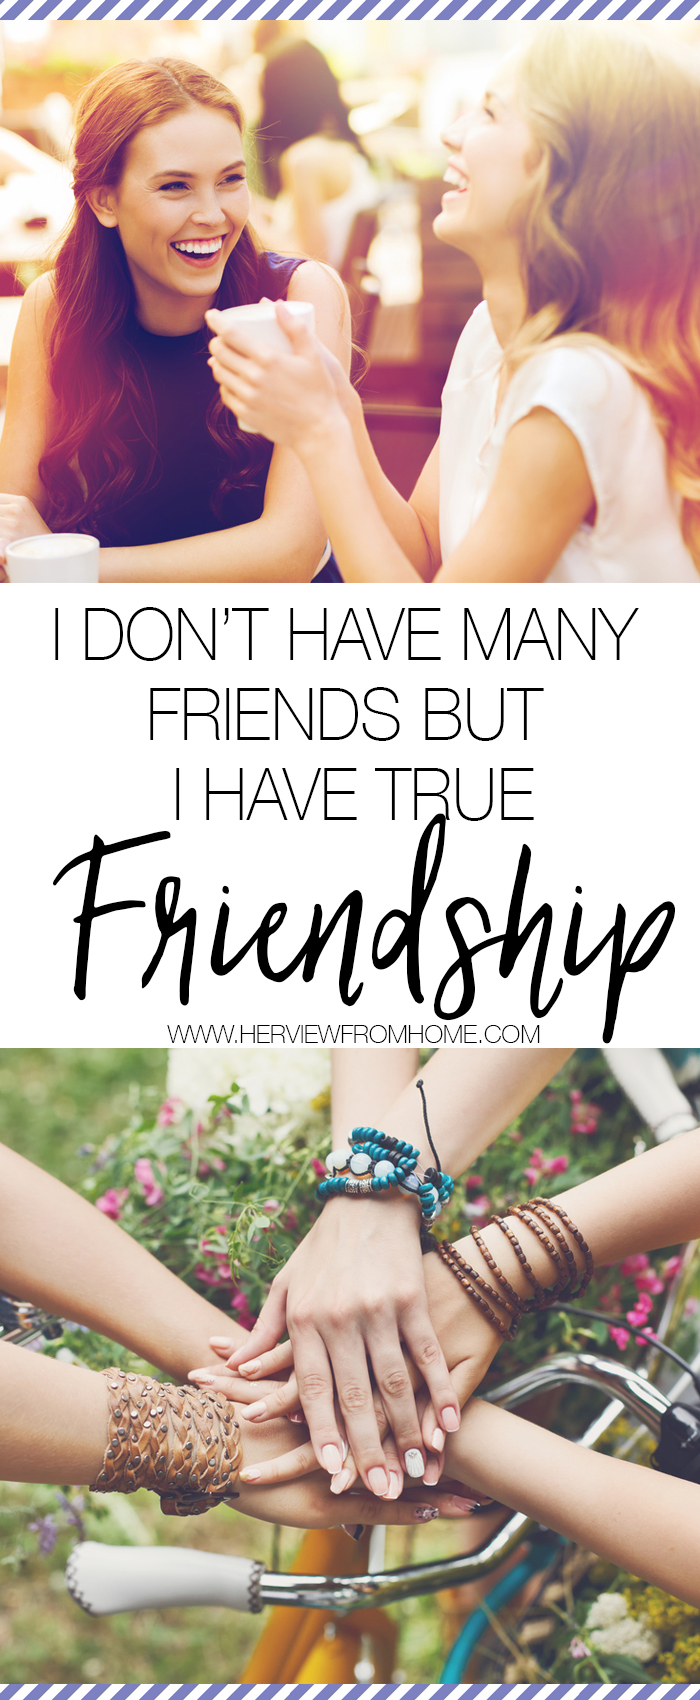 Whether you have one true friend, or many, is irrelevant in the grand scheme of things. What matters is whether those friendships fill your cup—and as they say, my cup runneth over.